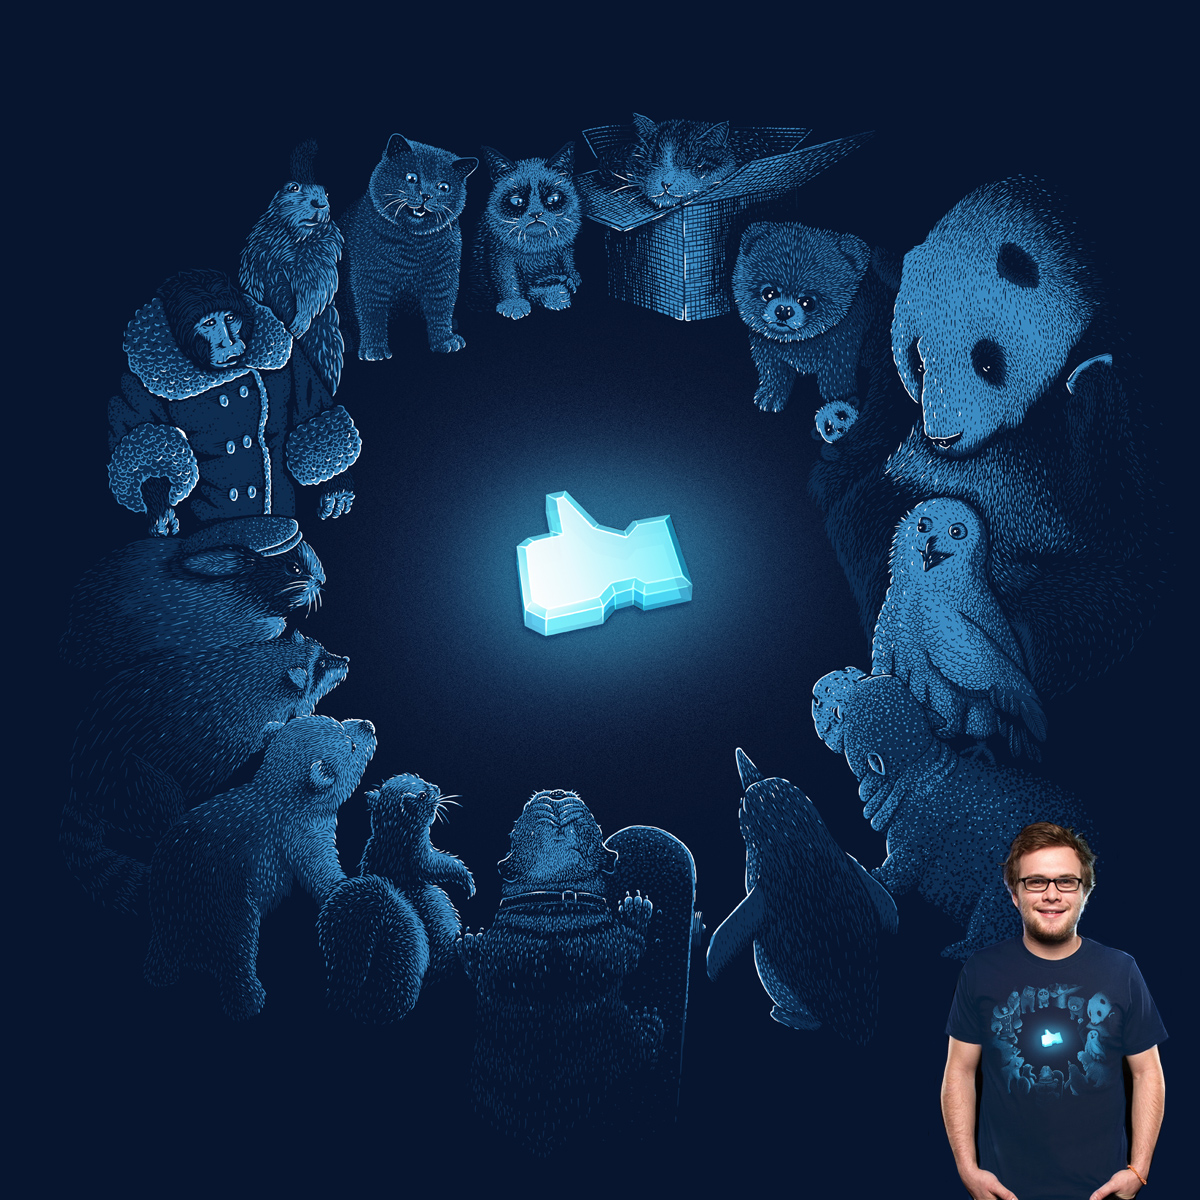 Kings of the Internets by melmike on Threadless